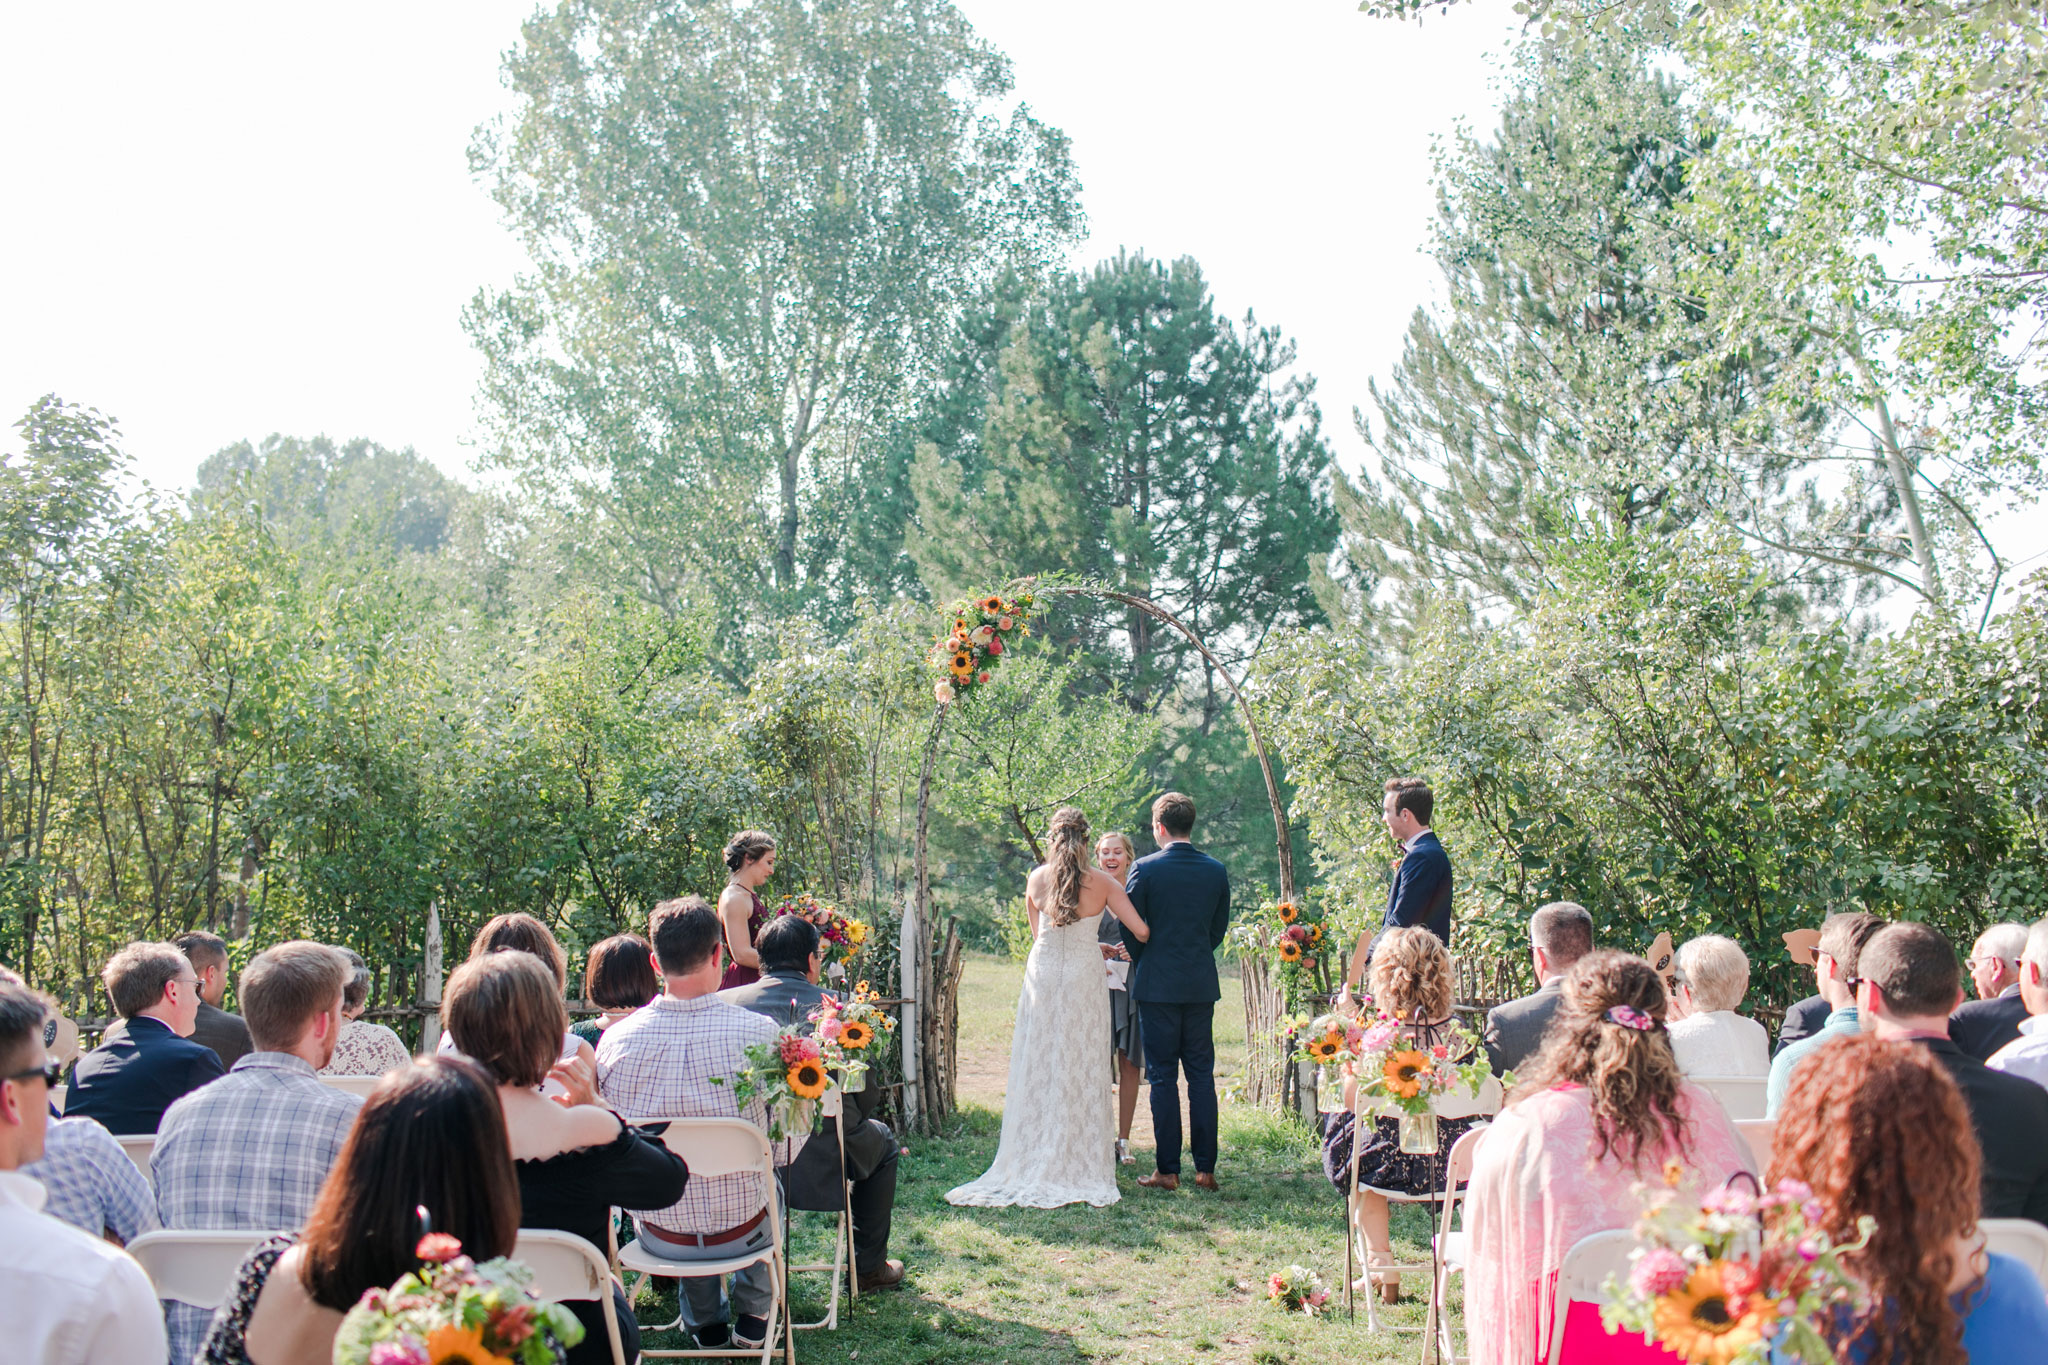 Ceremony | A Boho Garden Wedding in Colorado